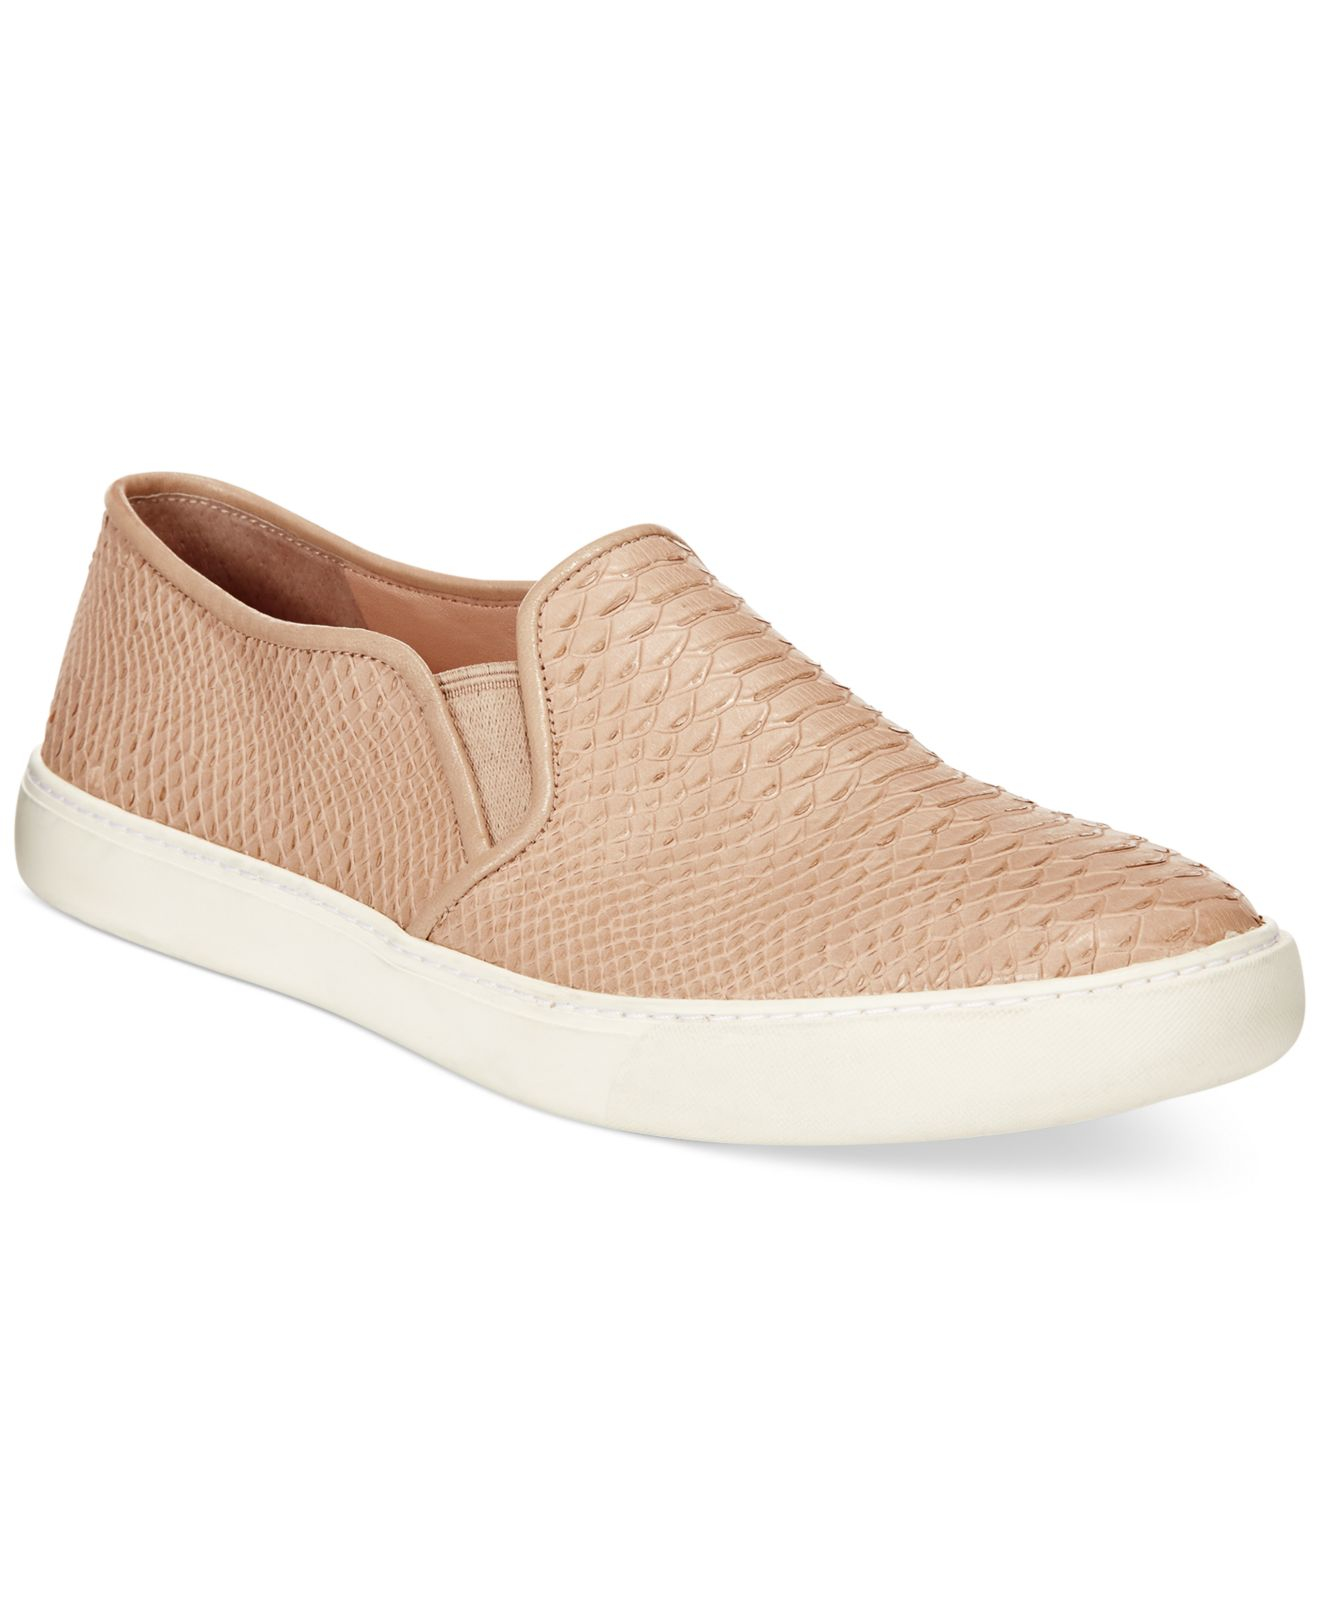 Cole Haan Bowie Slip On Sneakers In Natural Lyst